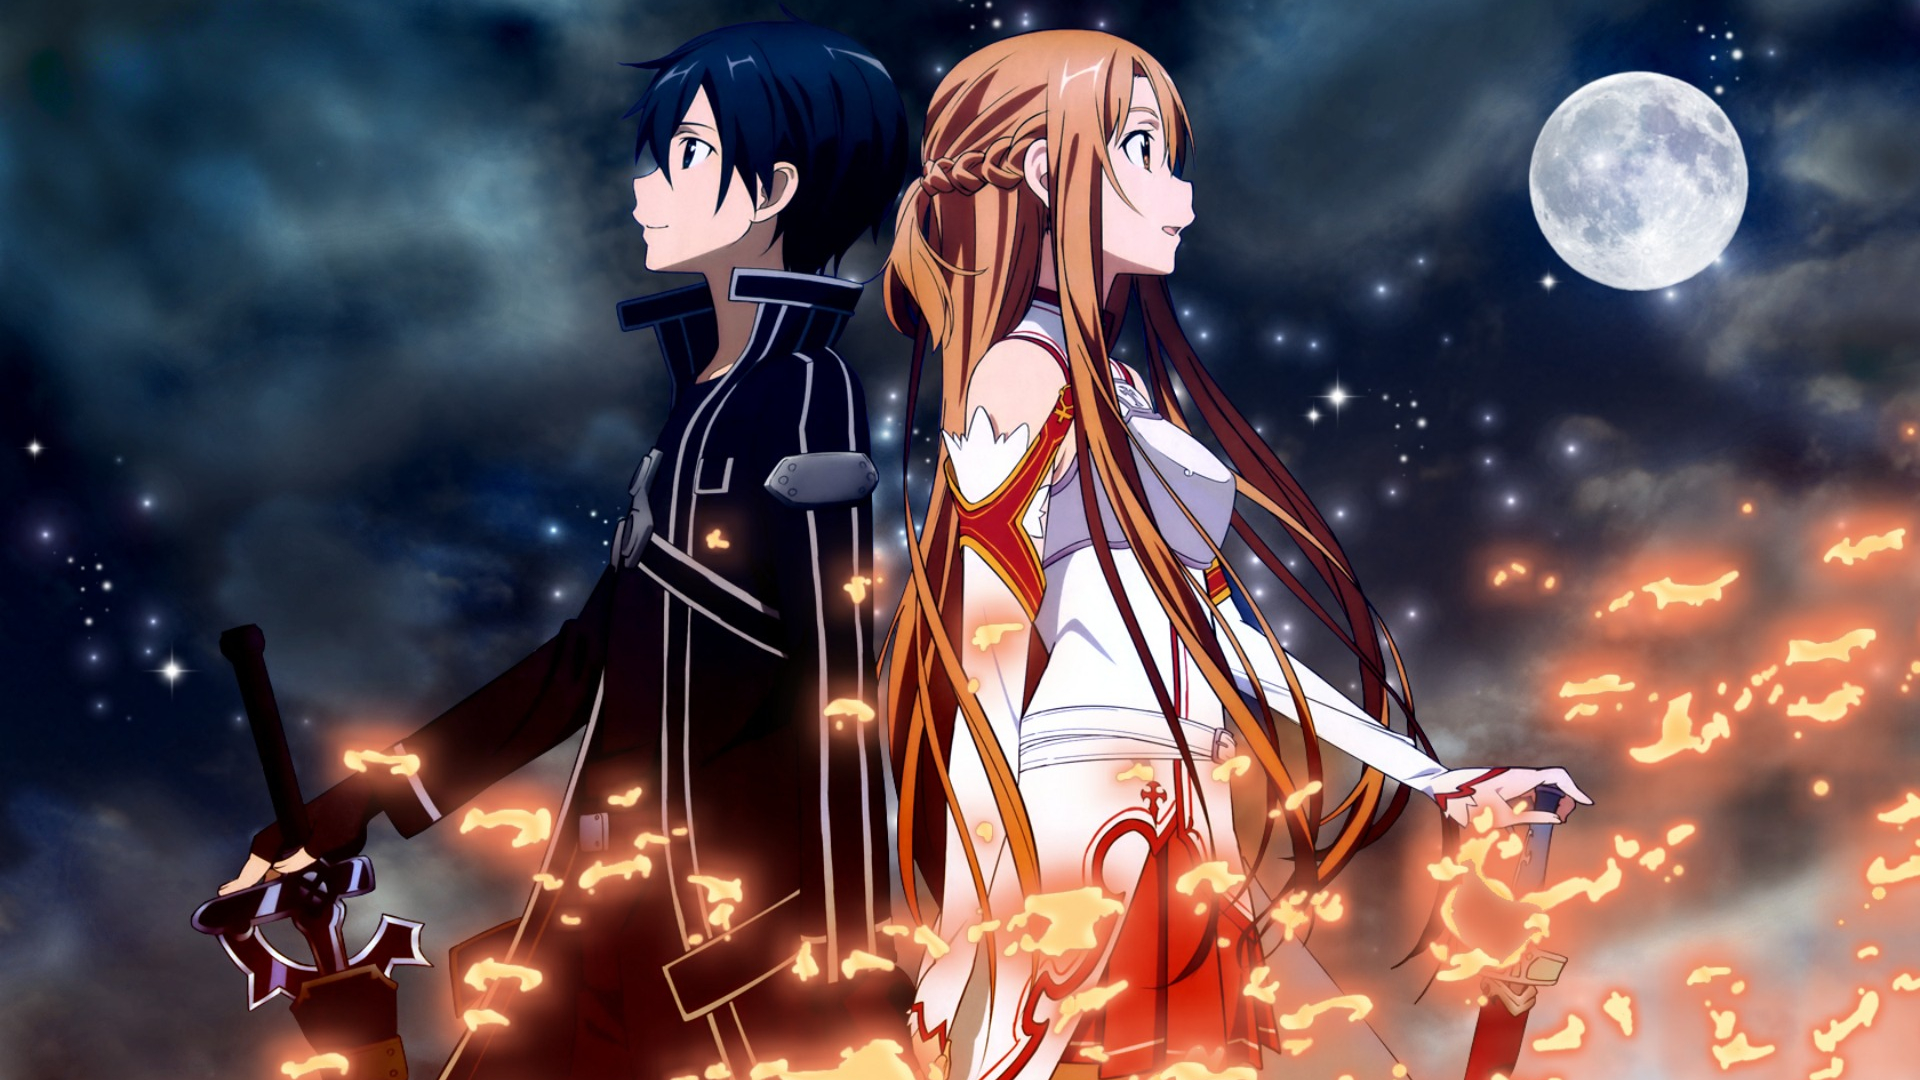 Free Download Sword Art Online Wallpapers Hd Wallpapers Early